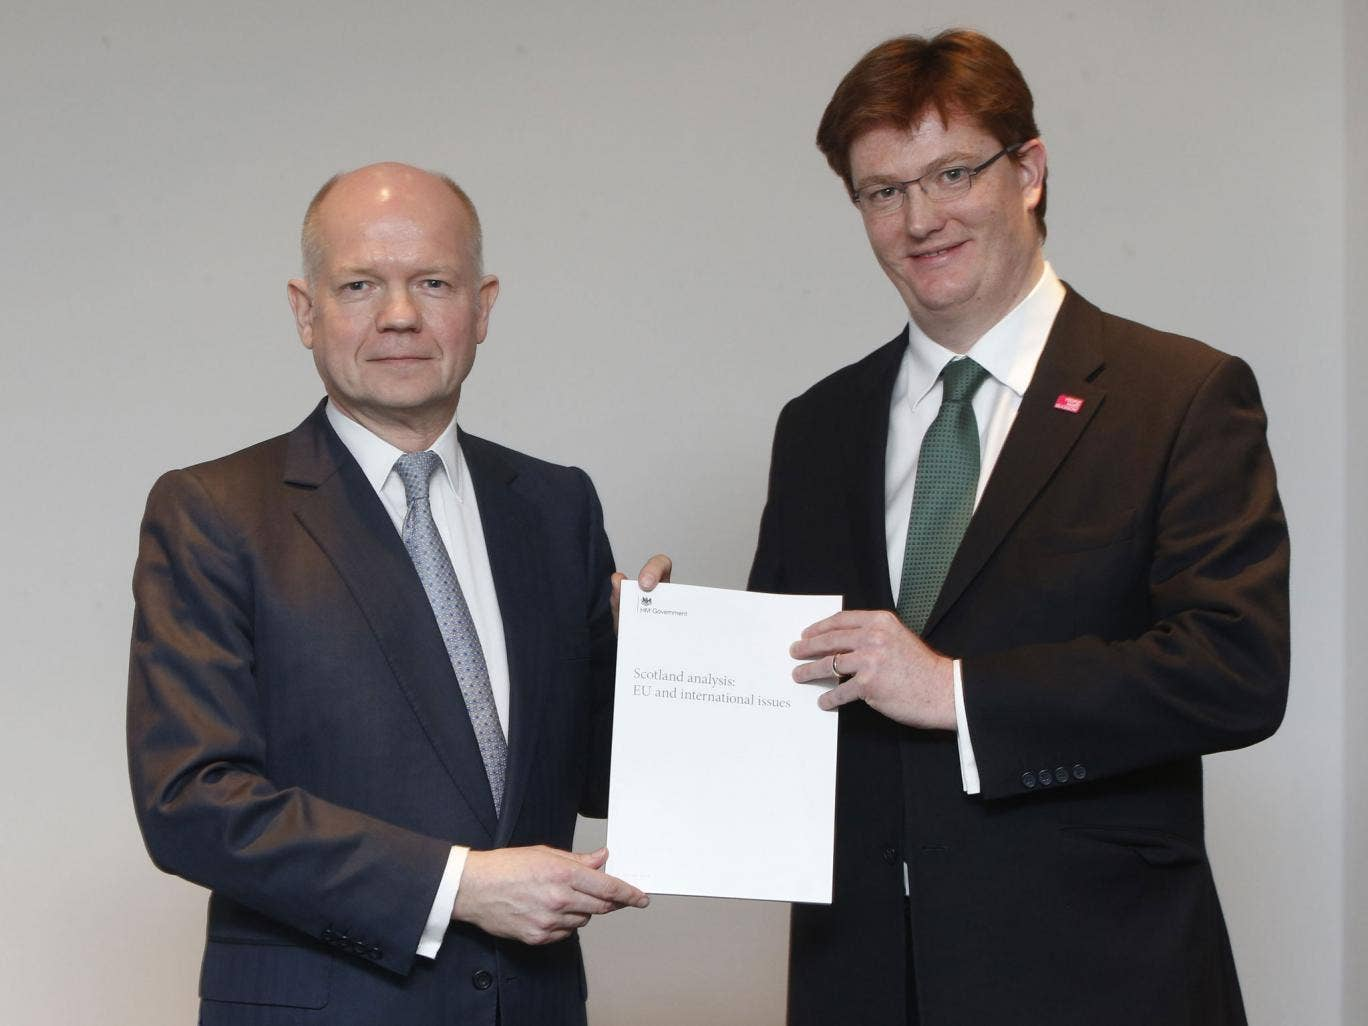 Foreign Secretary William Hague and chief Secretary to the Treasury Danny Alexander during the launch of the EU & international issues document at the Lighthouse in Glasgow